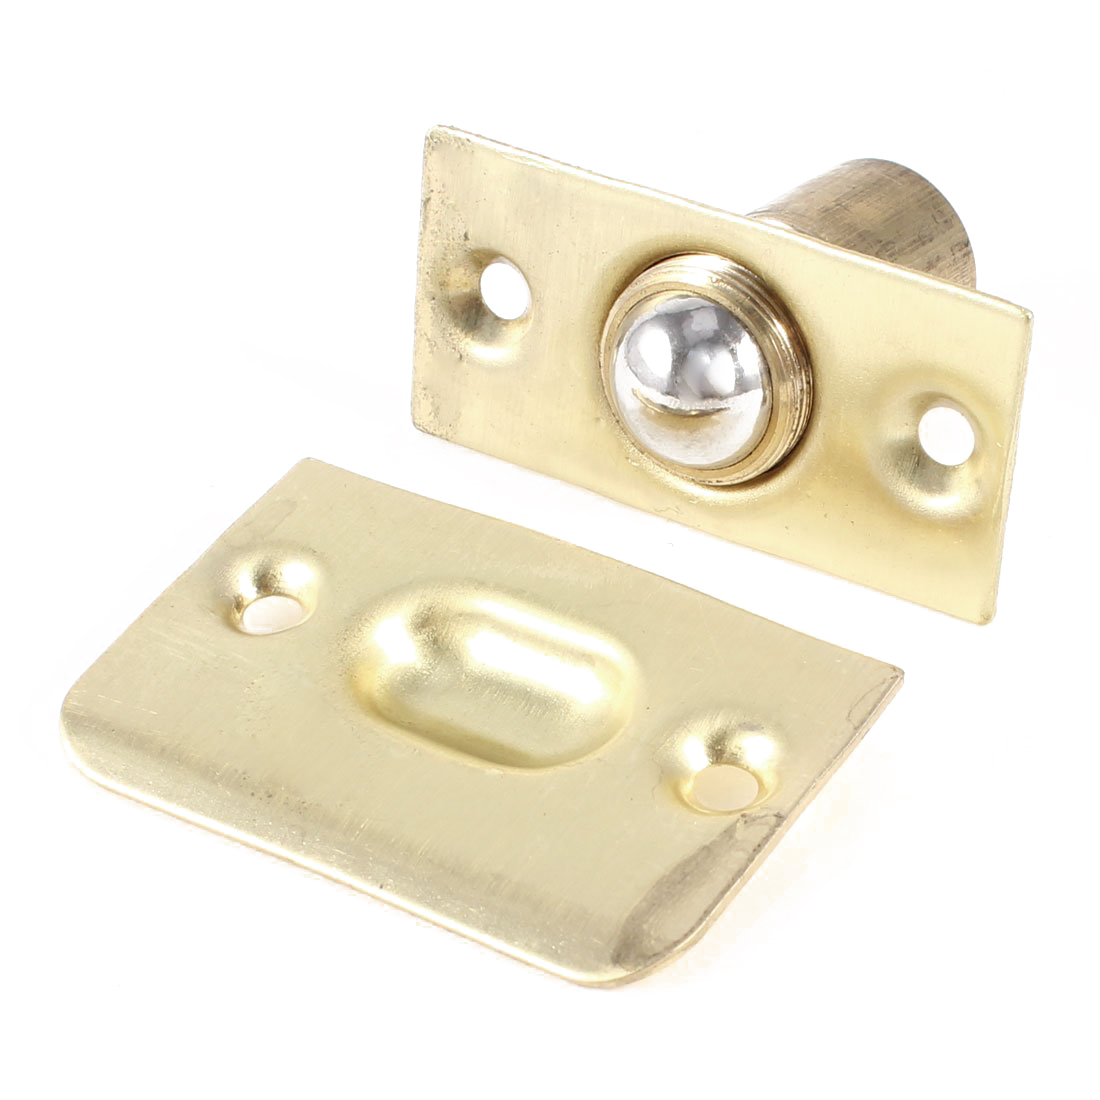 French Doors Fitting brass Ball Catch w Strike Plate Gold Tone